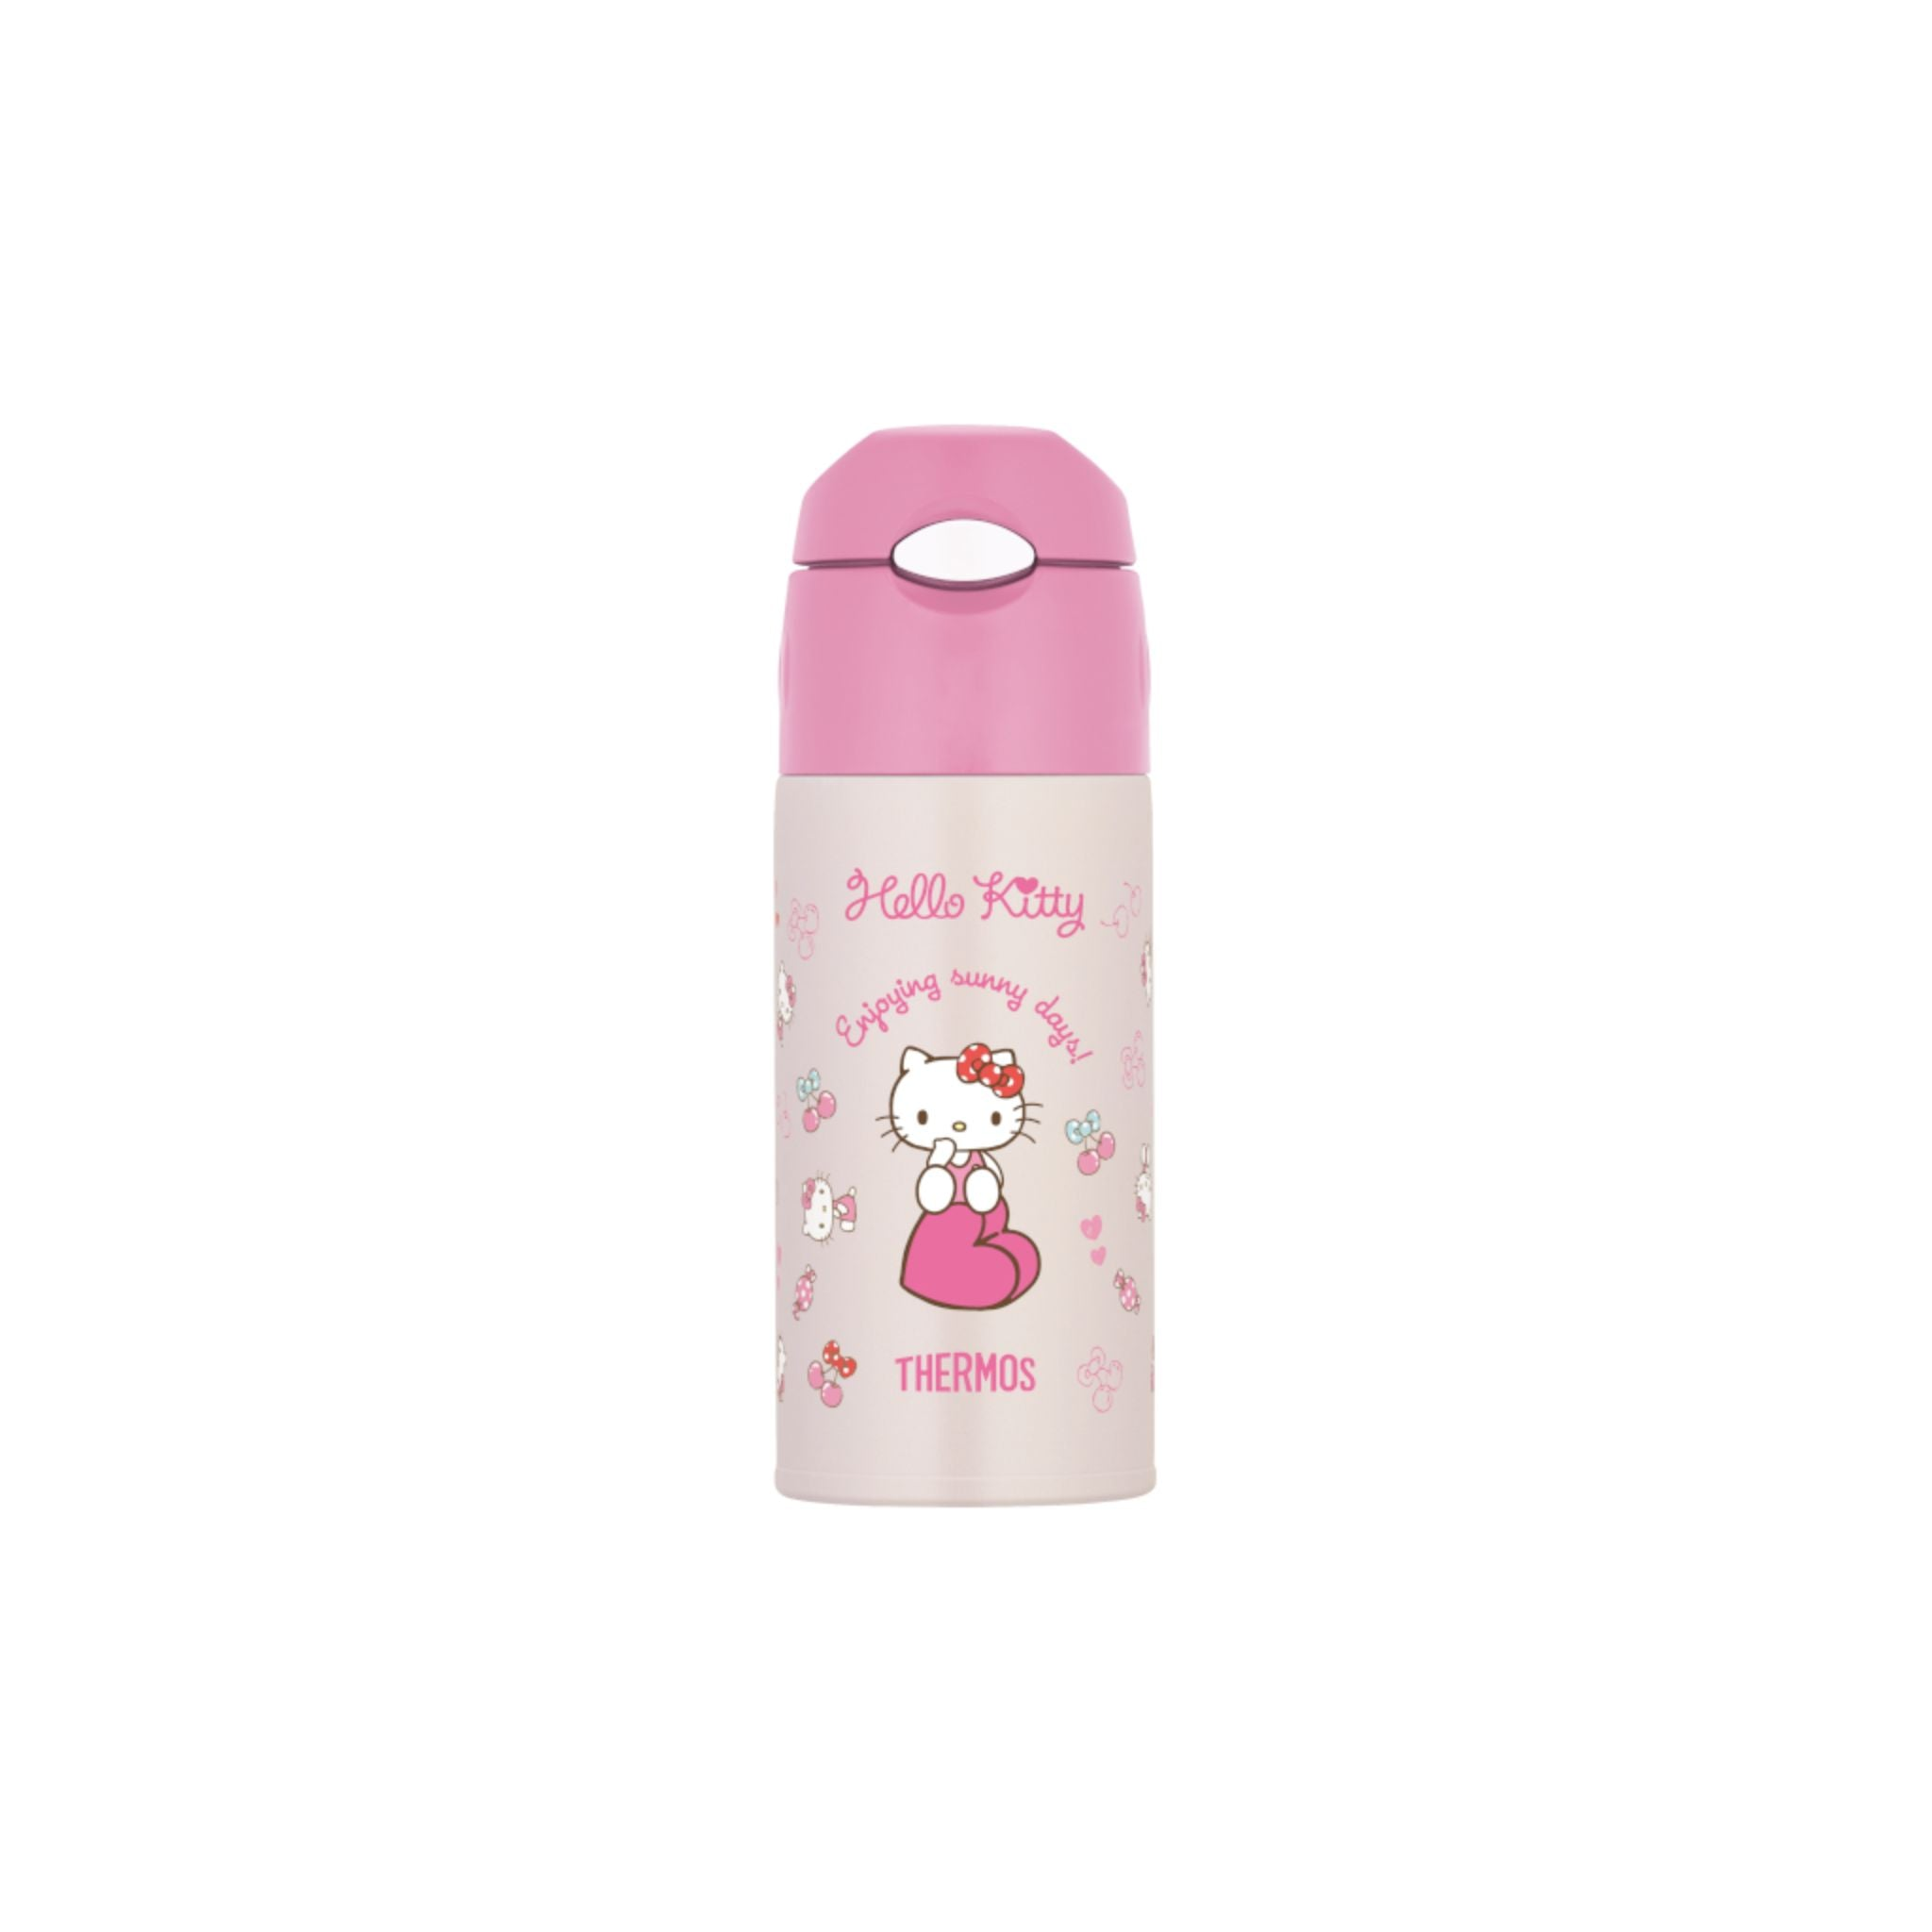 Thermos 0.4L Stainless Steel Vacuum Insulation Sanrio Hello Kitty Straw Bottle - Pink